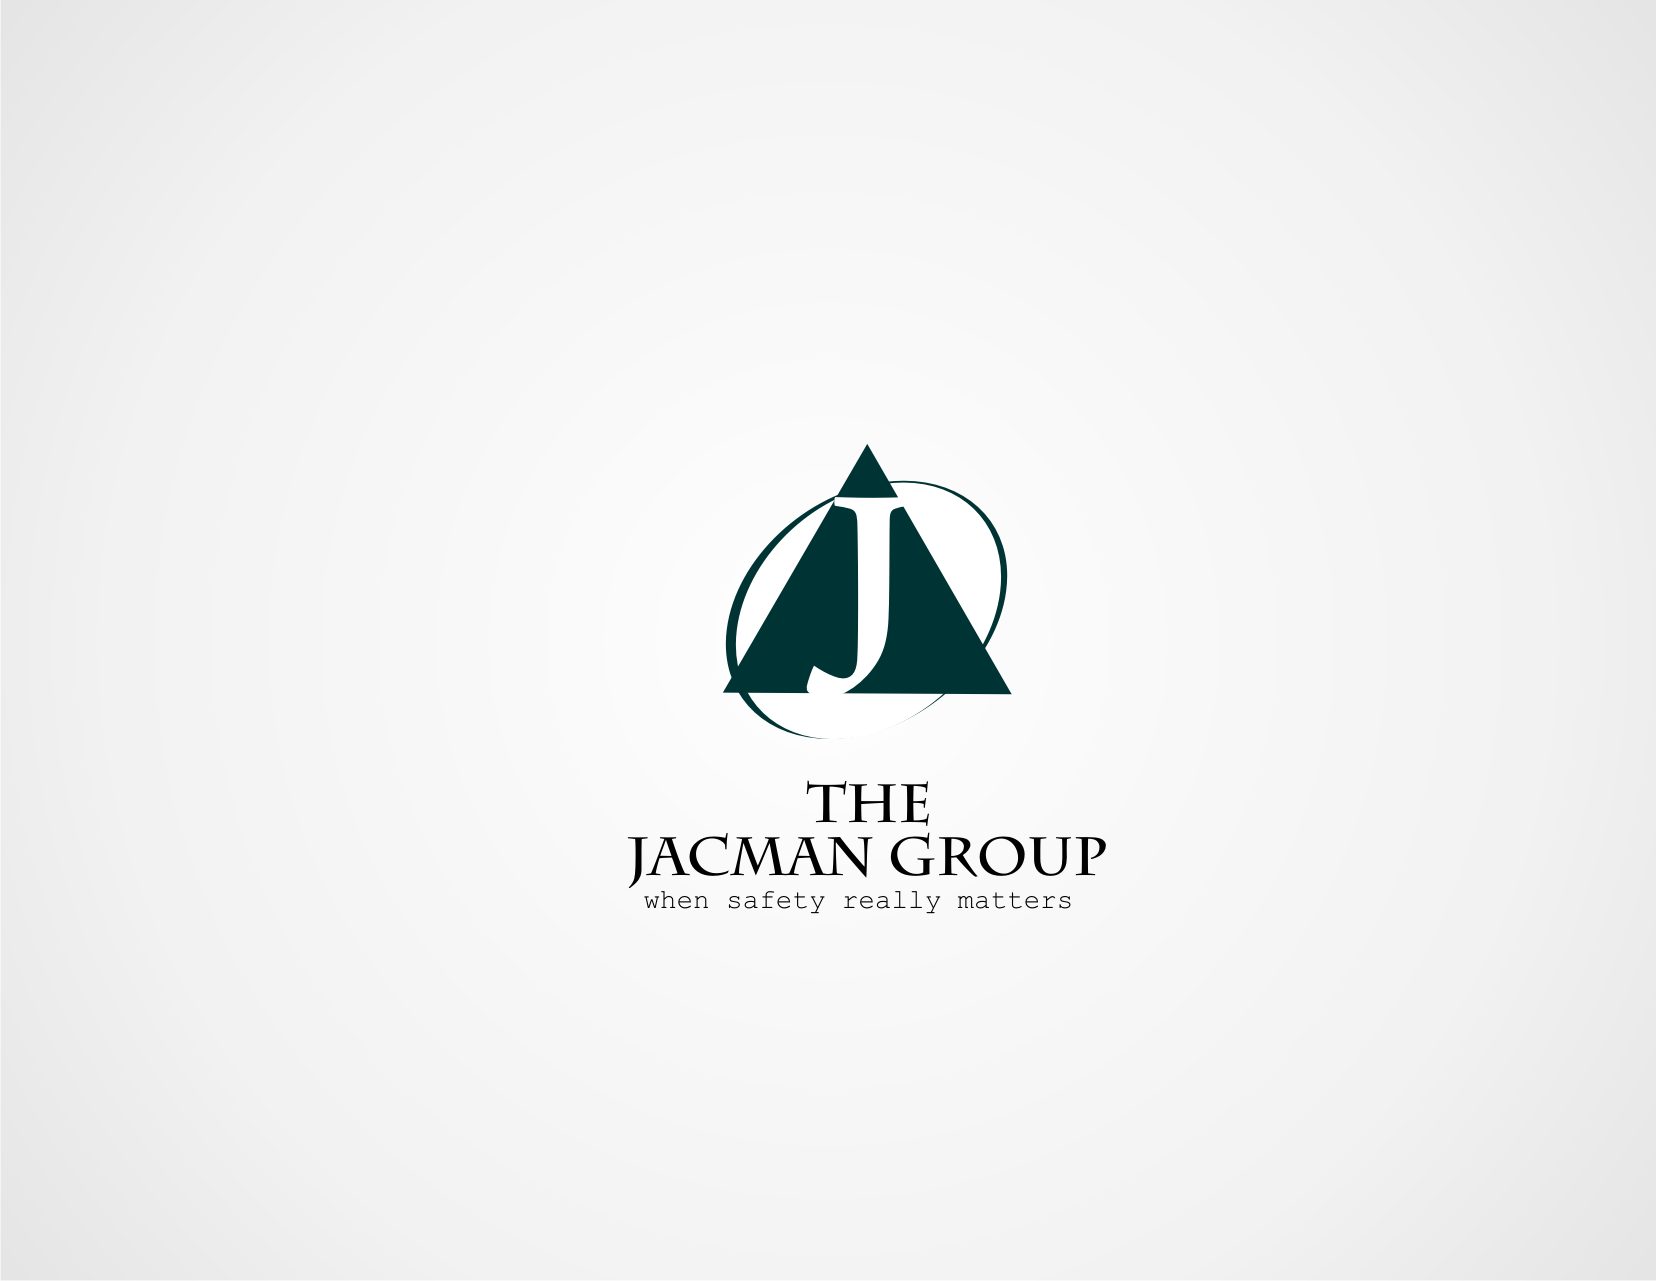 Logo Design by Galih Prasetyo - Entry No. 8 in the Logo Design Contest The Jacman Group Logo Design.